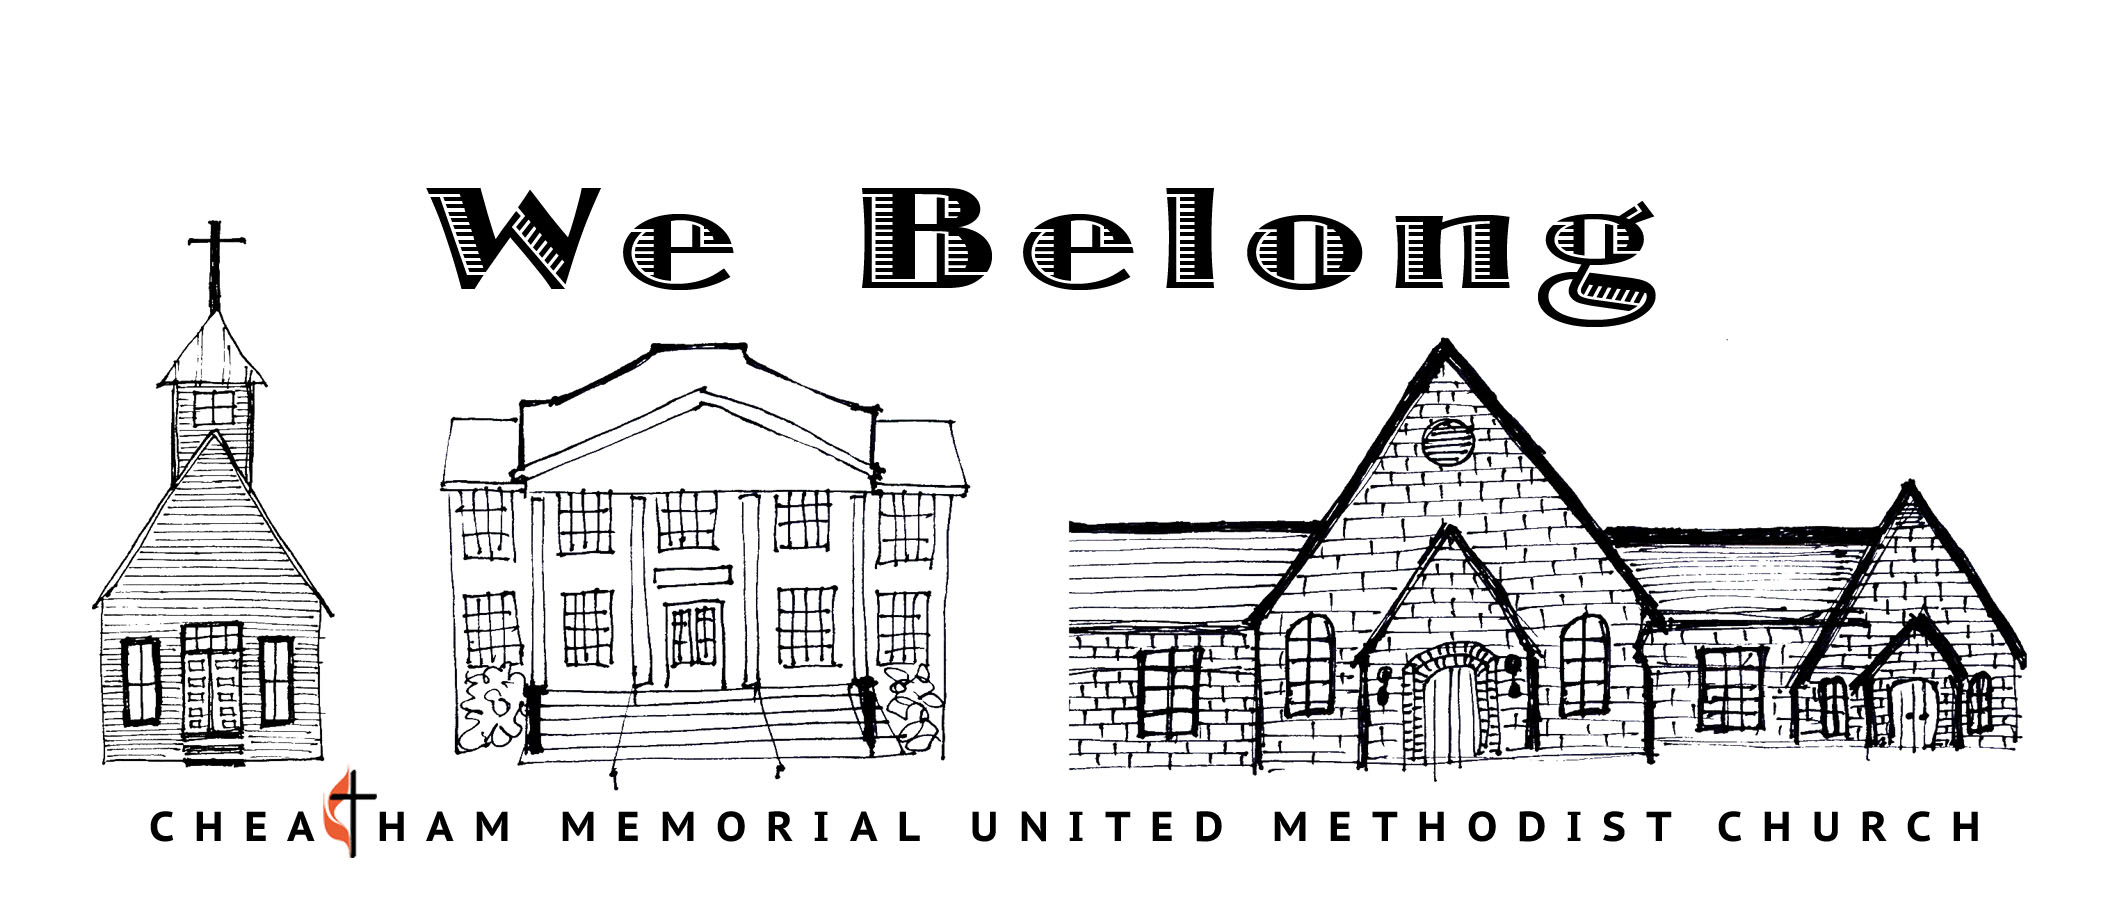 135th Anniversary of Cheatham Memorial UMC's Artwork